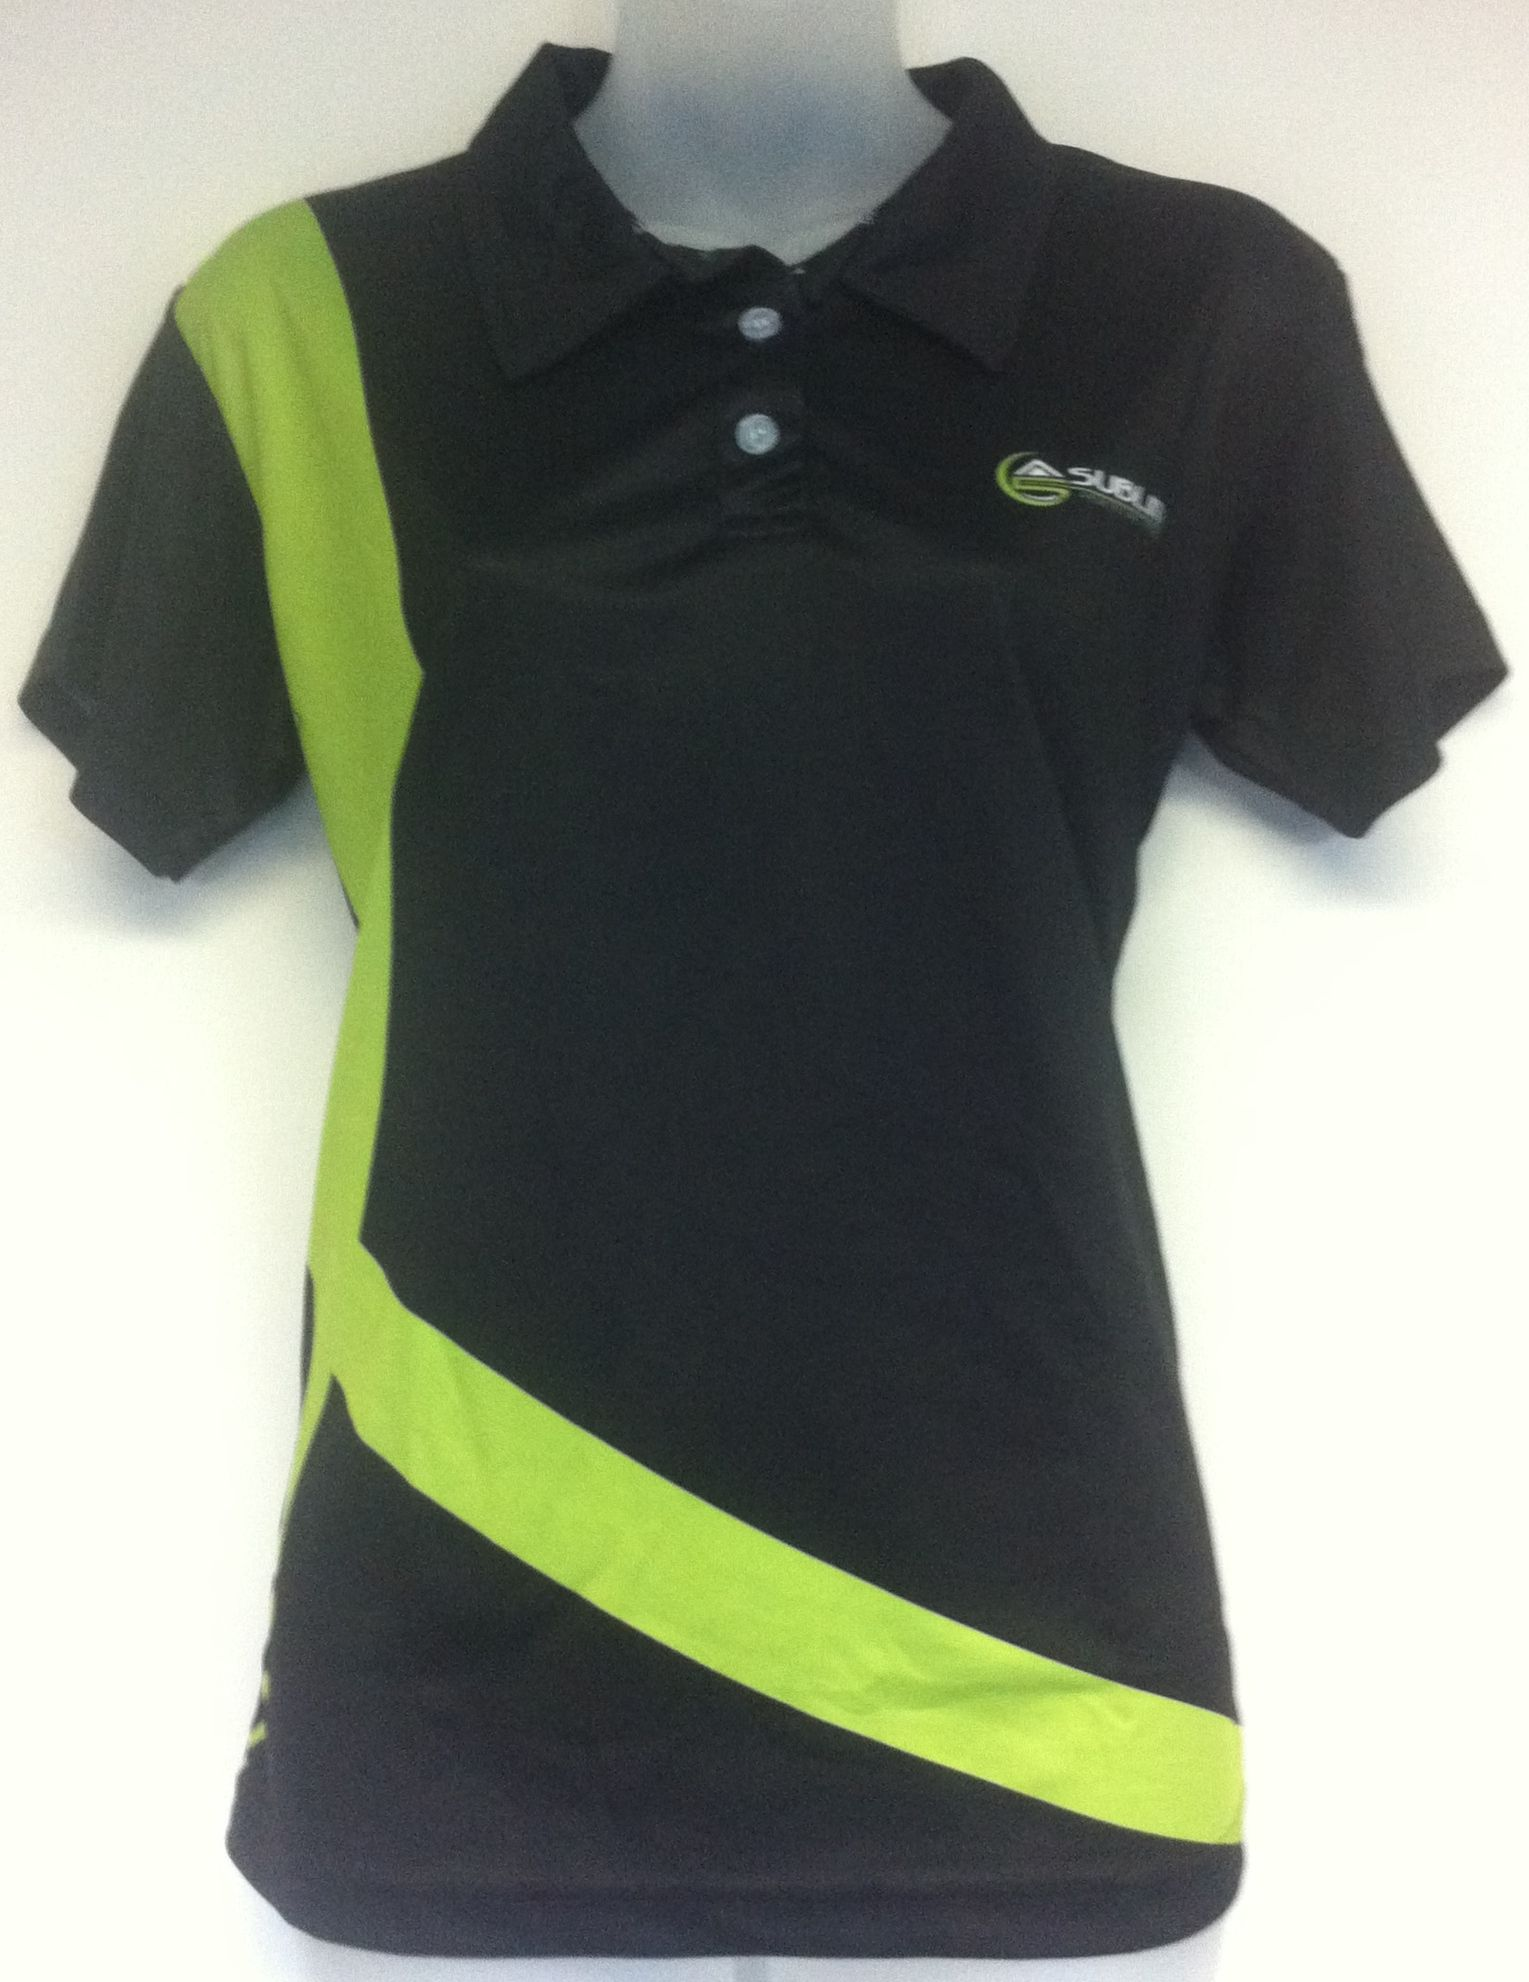 This polo shirt was created for the sublime interiors team for Design your own polo shirts